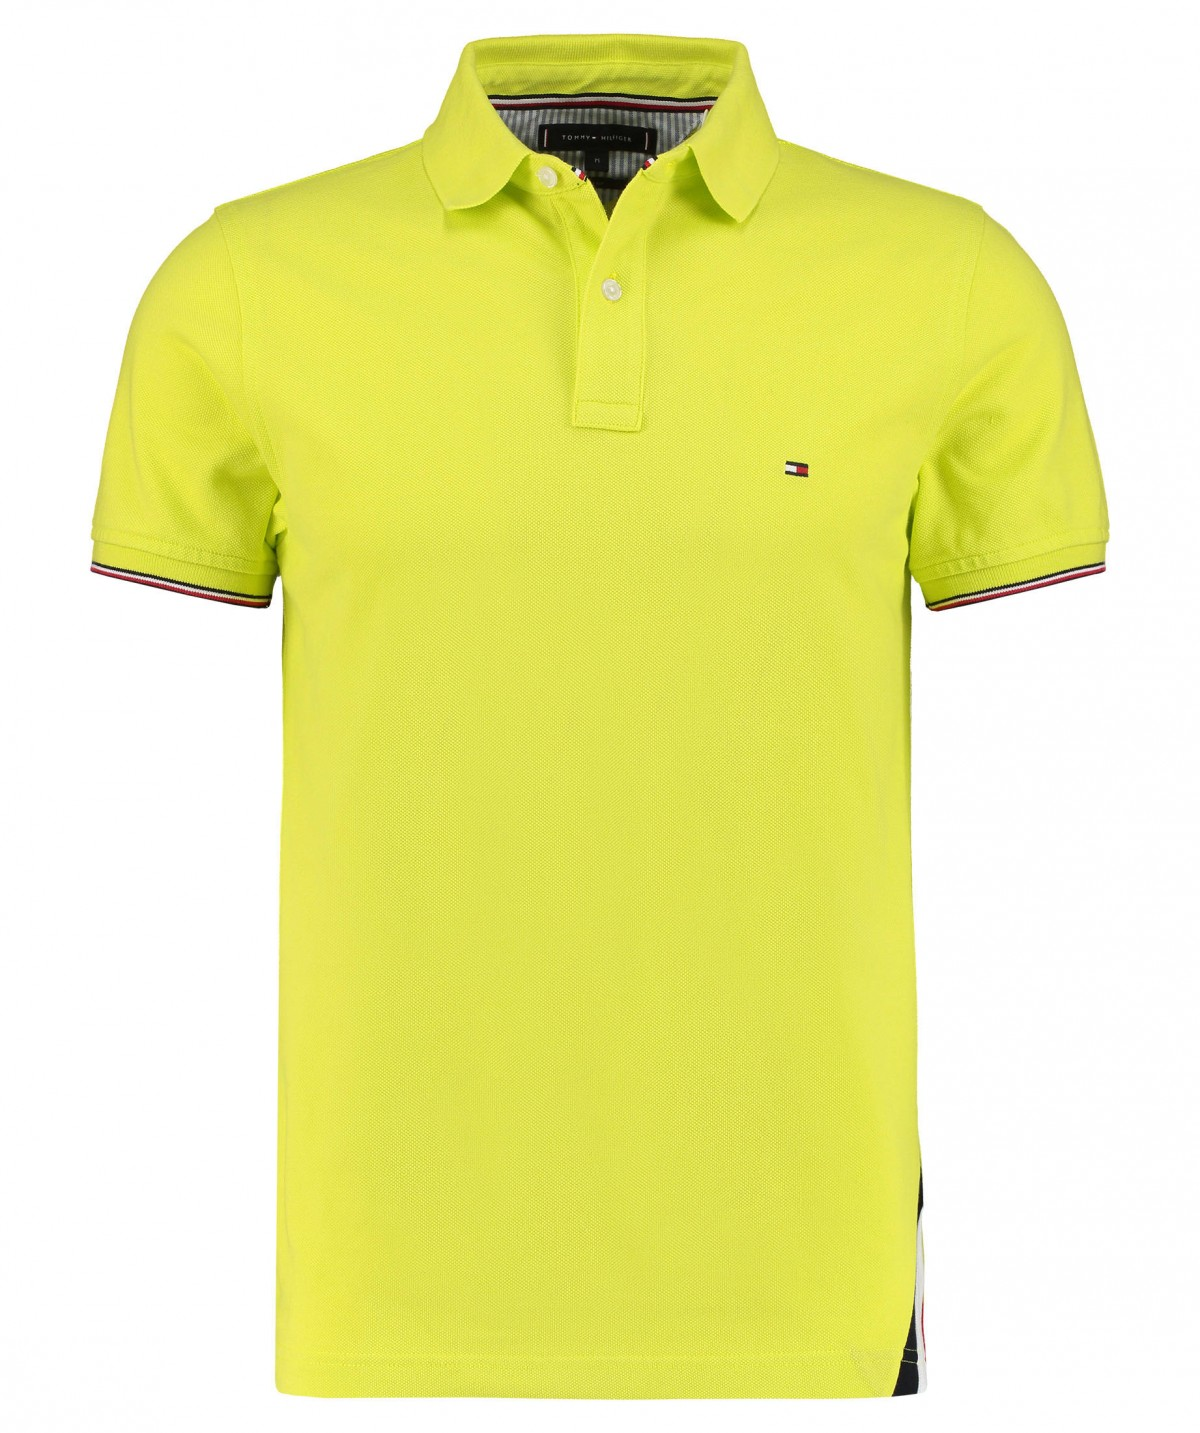 12398 Tommy Hilfiger Polo Shirt Slim Fit | LRE Zitrone